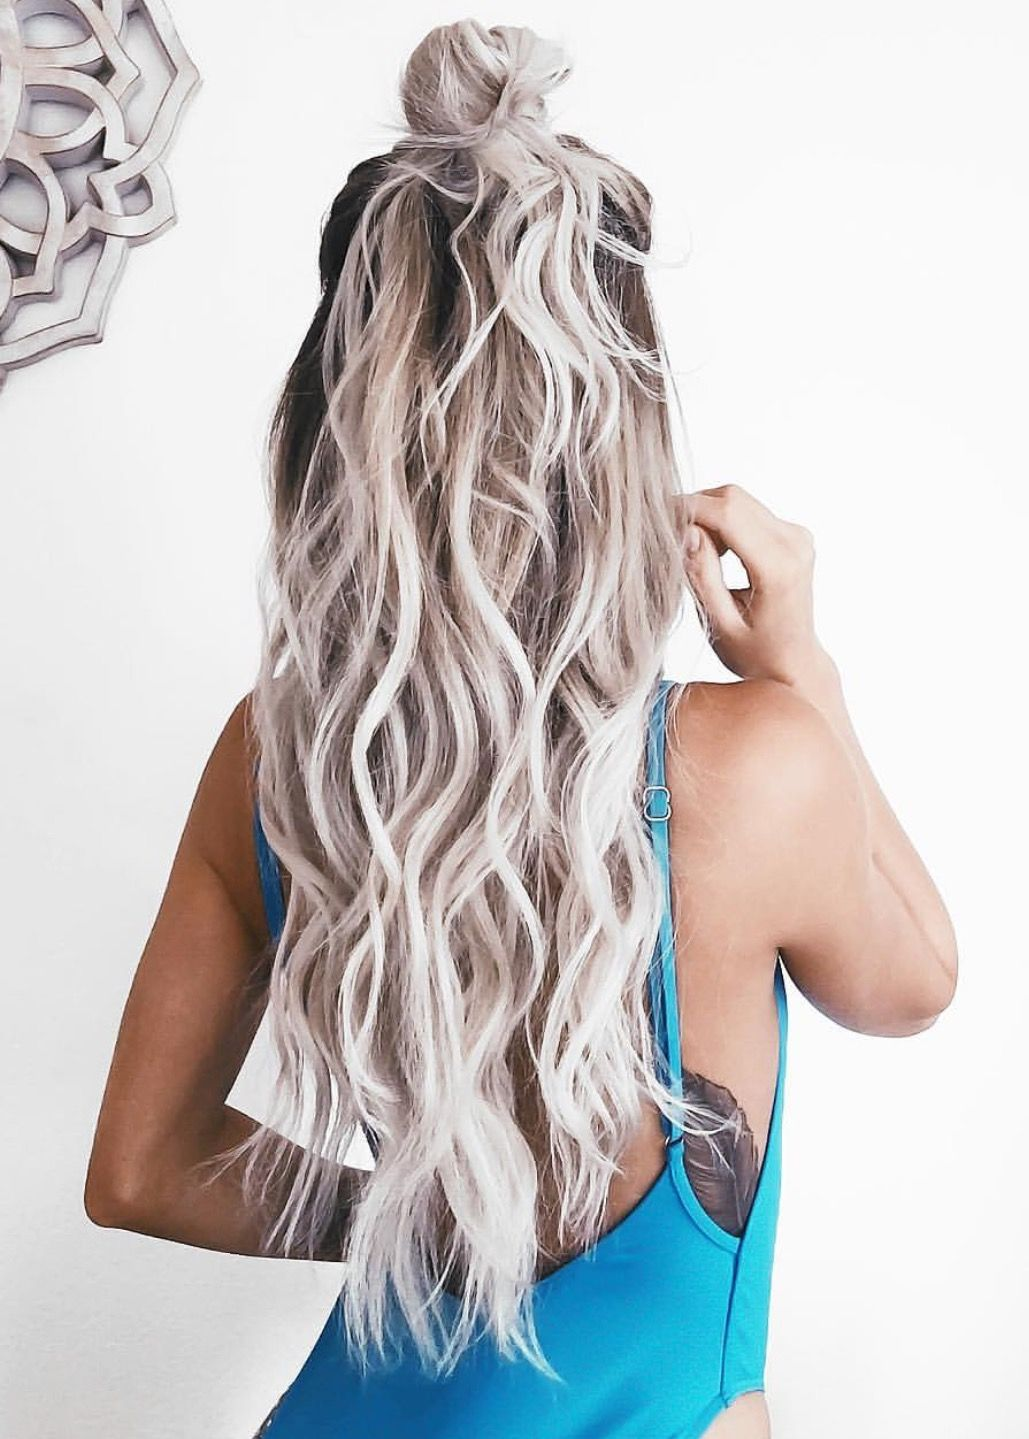 Pin by alisia on hairstyles pinterest hair style hair goals